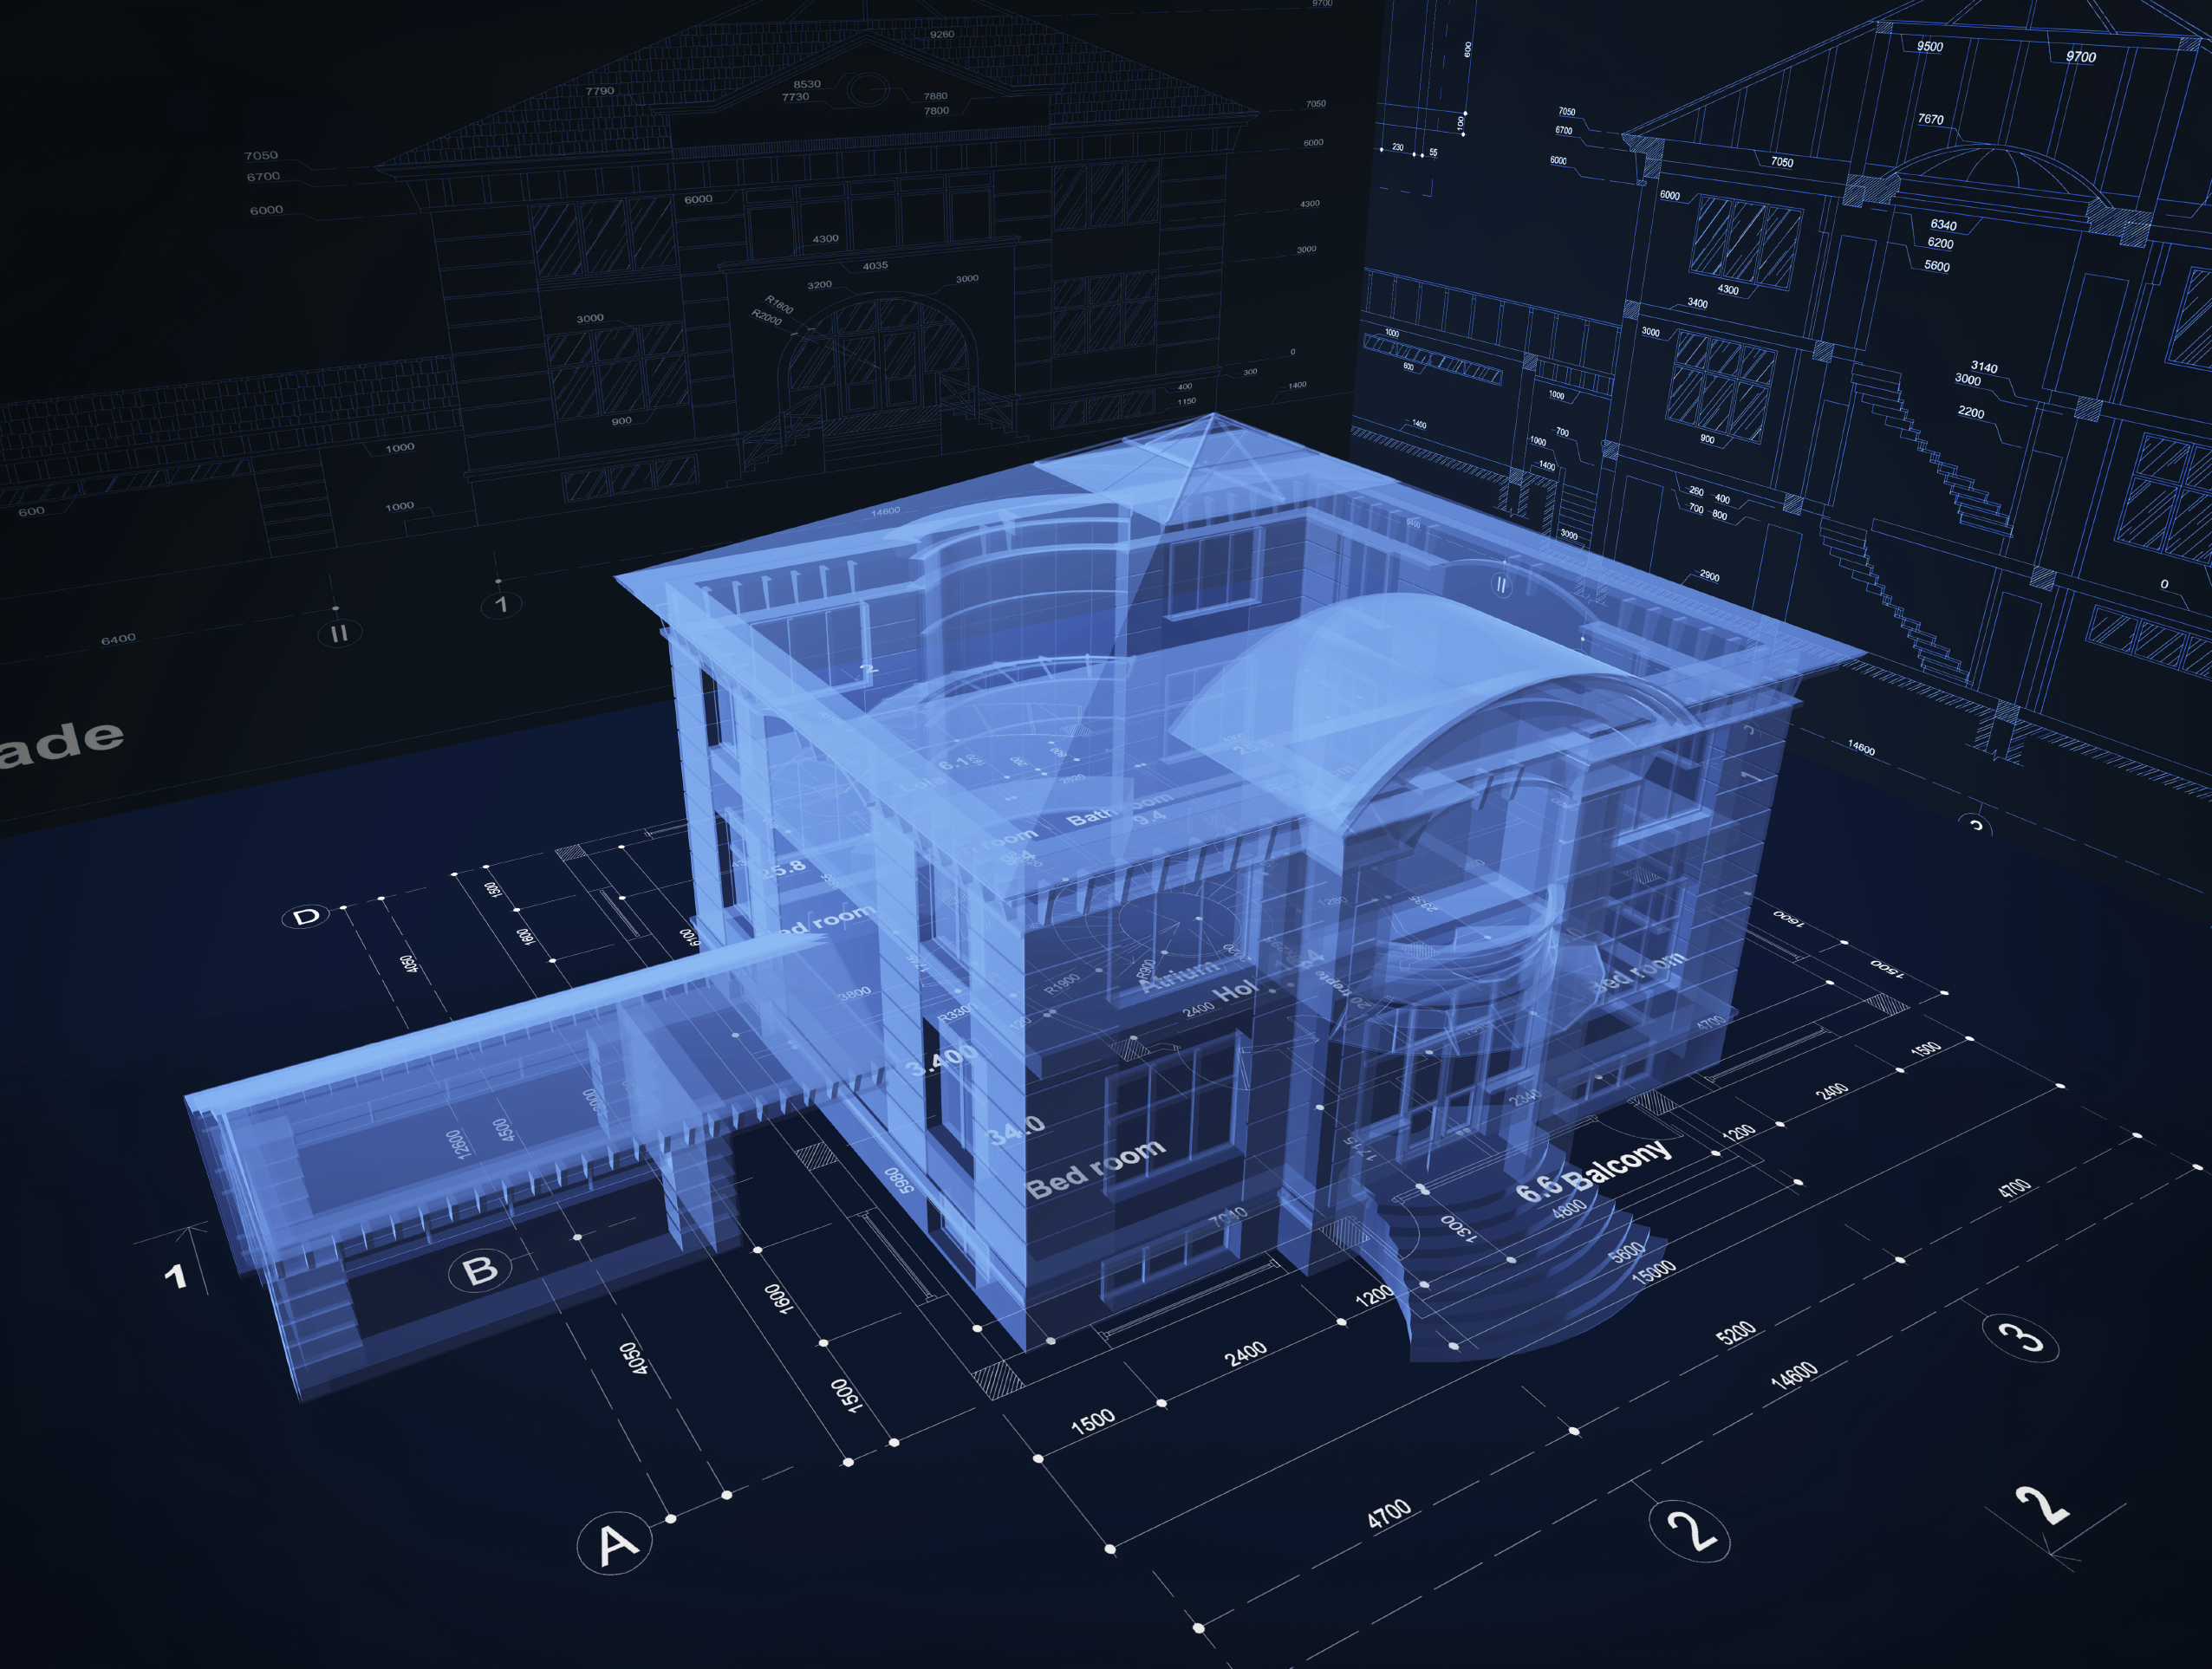 Holograms on Residential House Plans